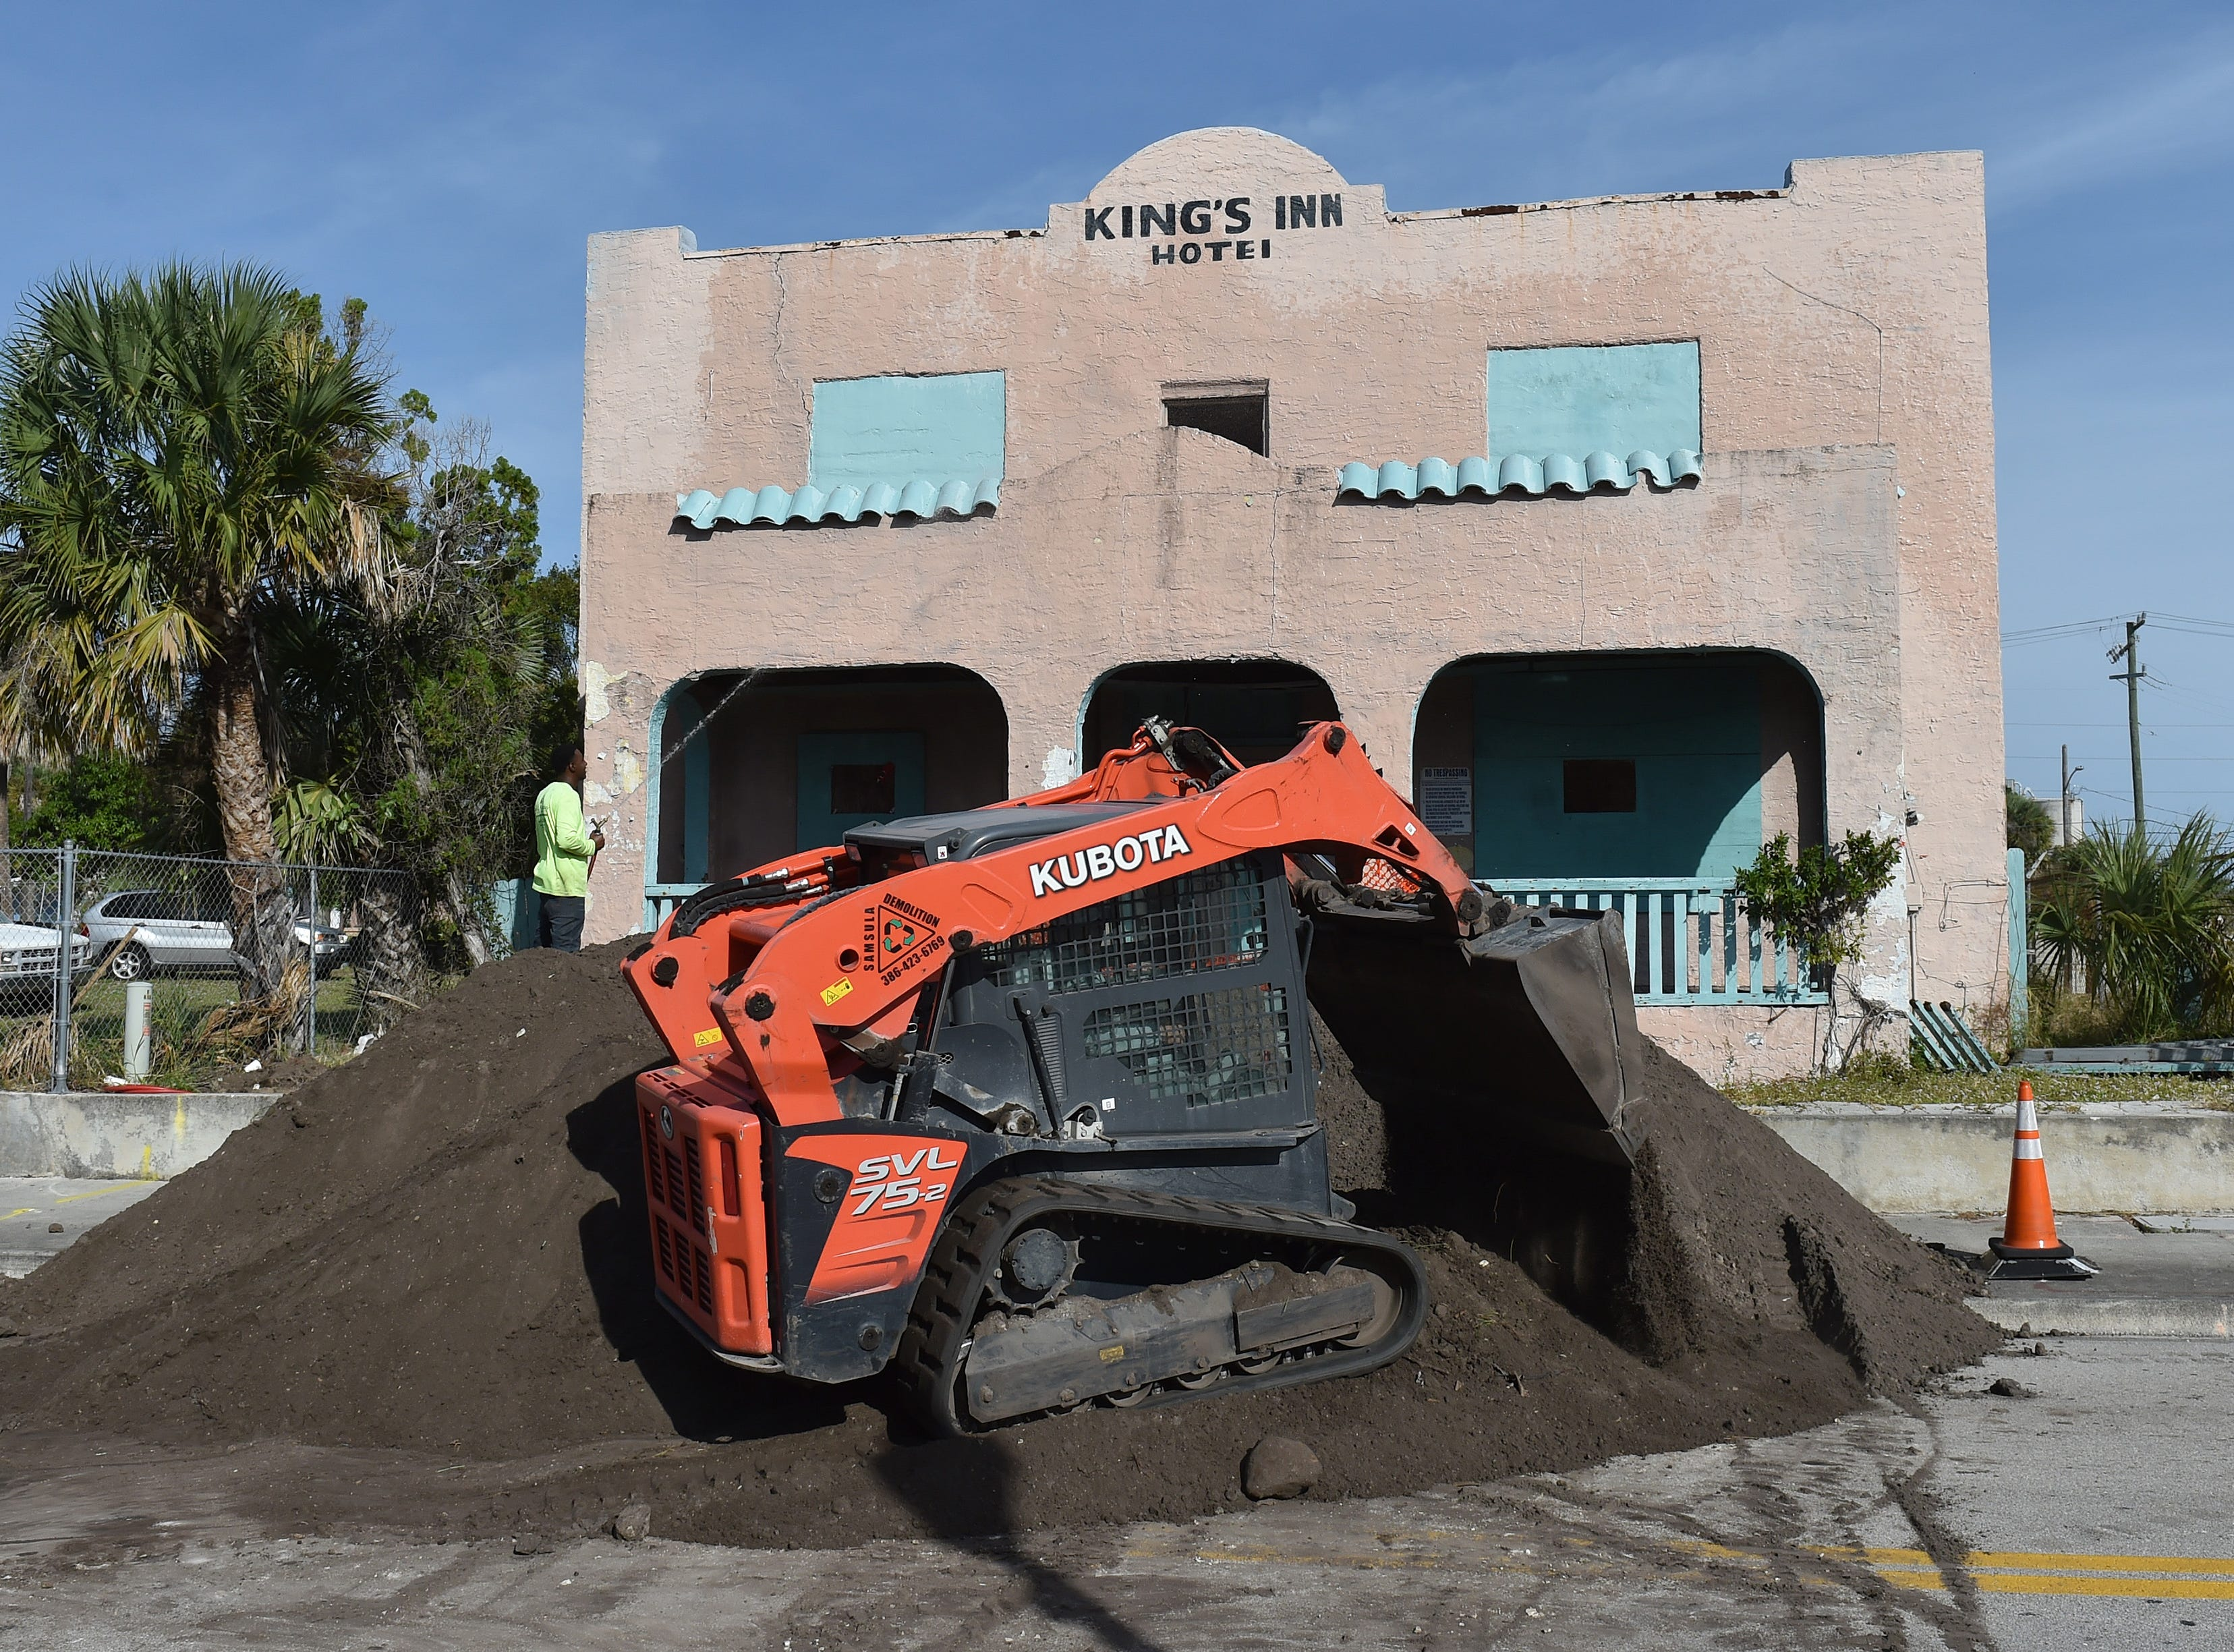 The demolition of the old King's Inn building at 414 Avenue D begins on Monday, Nov. 26, 2018, in Fort Pierce. The King's Inn, a 5,624 square foot hotel constructed in 1926, has been vacant for more than a decade, and is under deconstruction through Monday, Dec. 3, 2018, closing Avenue D from U.S. 1 to North 7th Street.